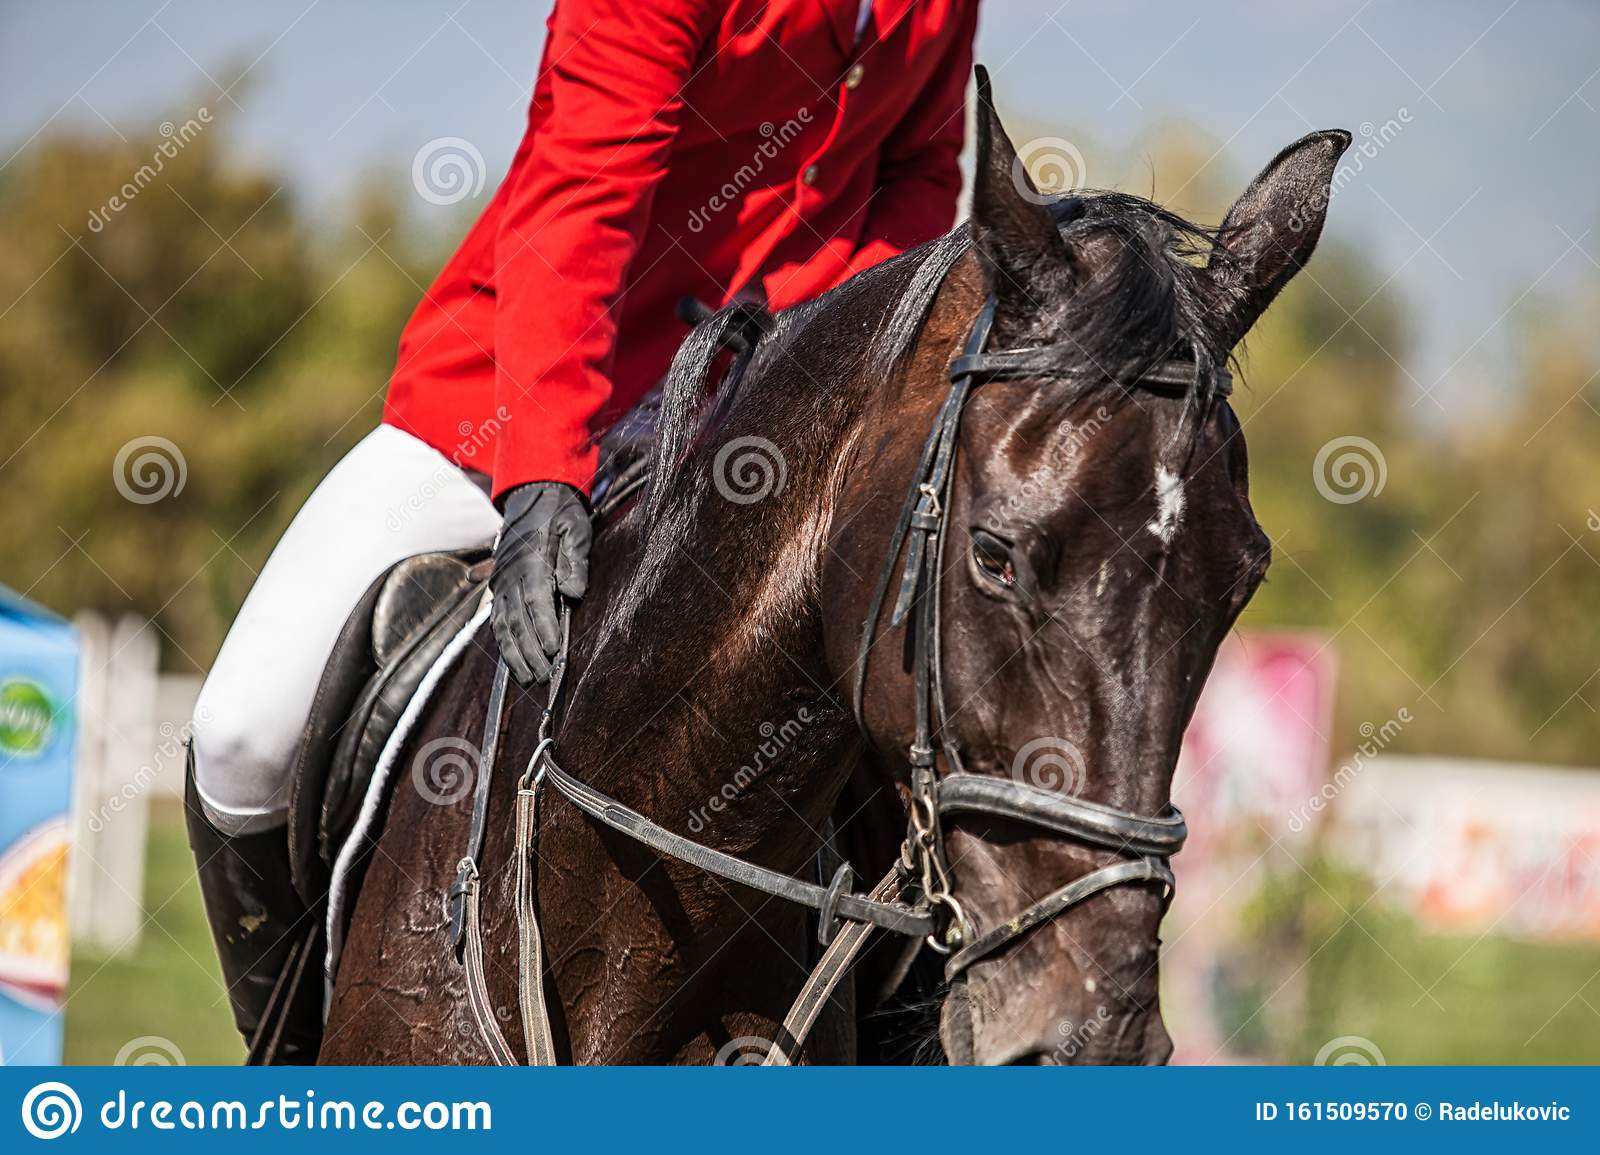 Dressage Horse And A Rider Stock Photo Image Of Industry 161509570